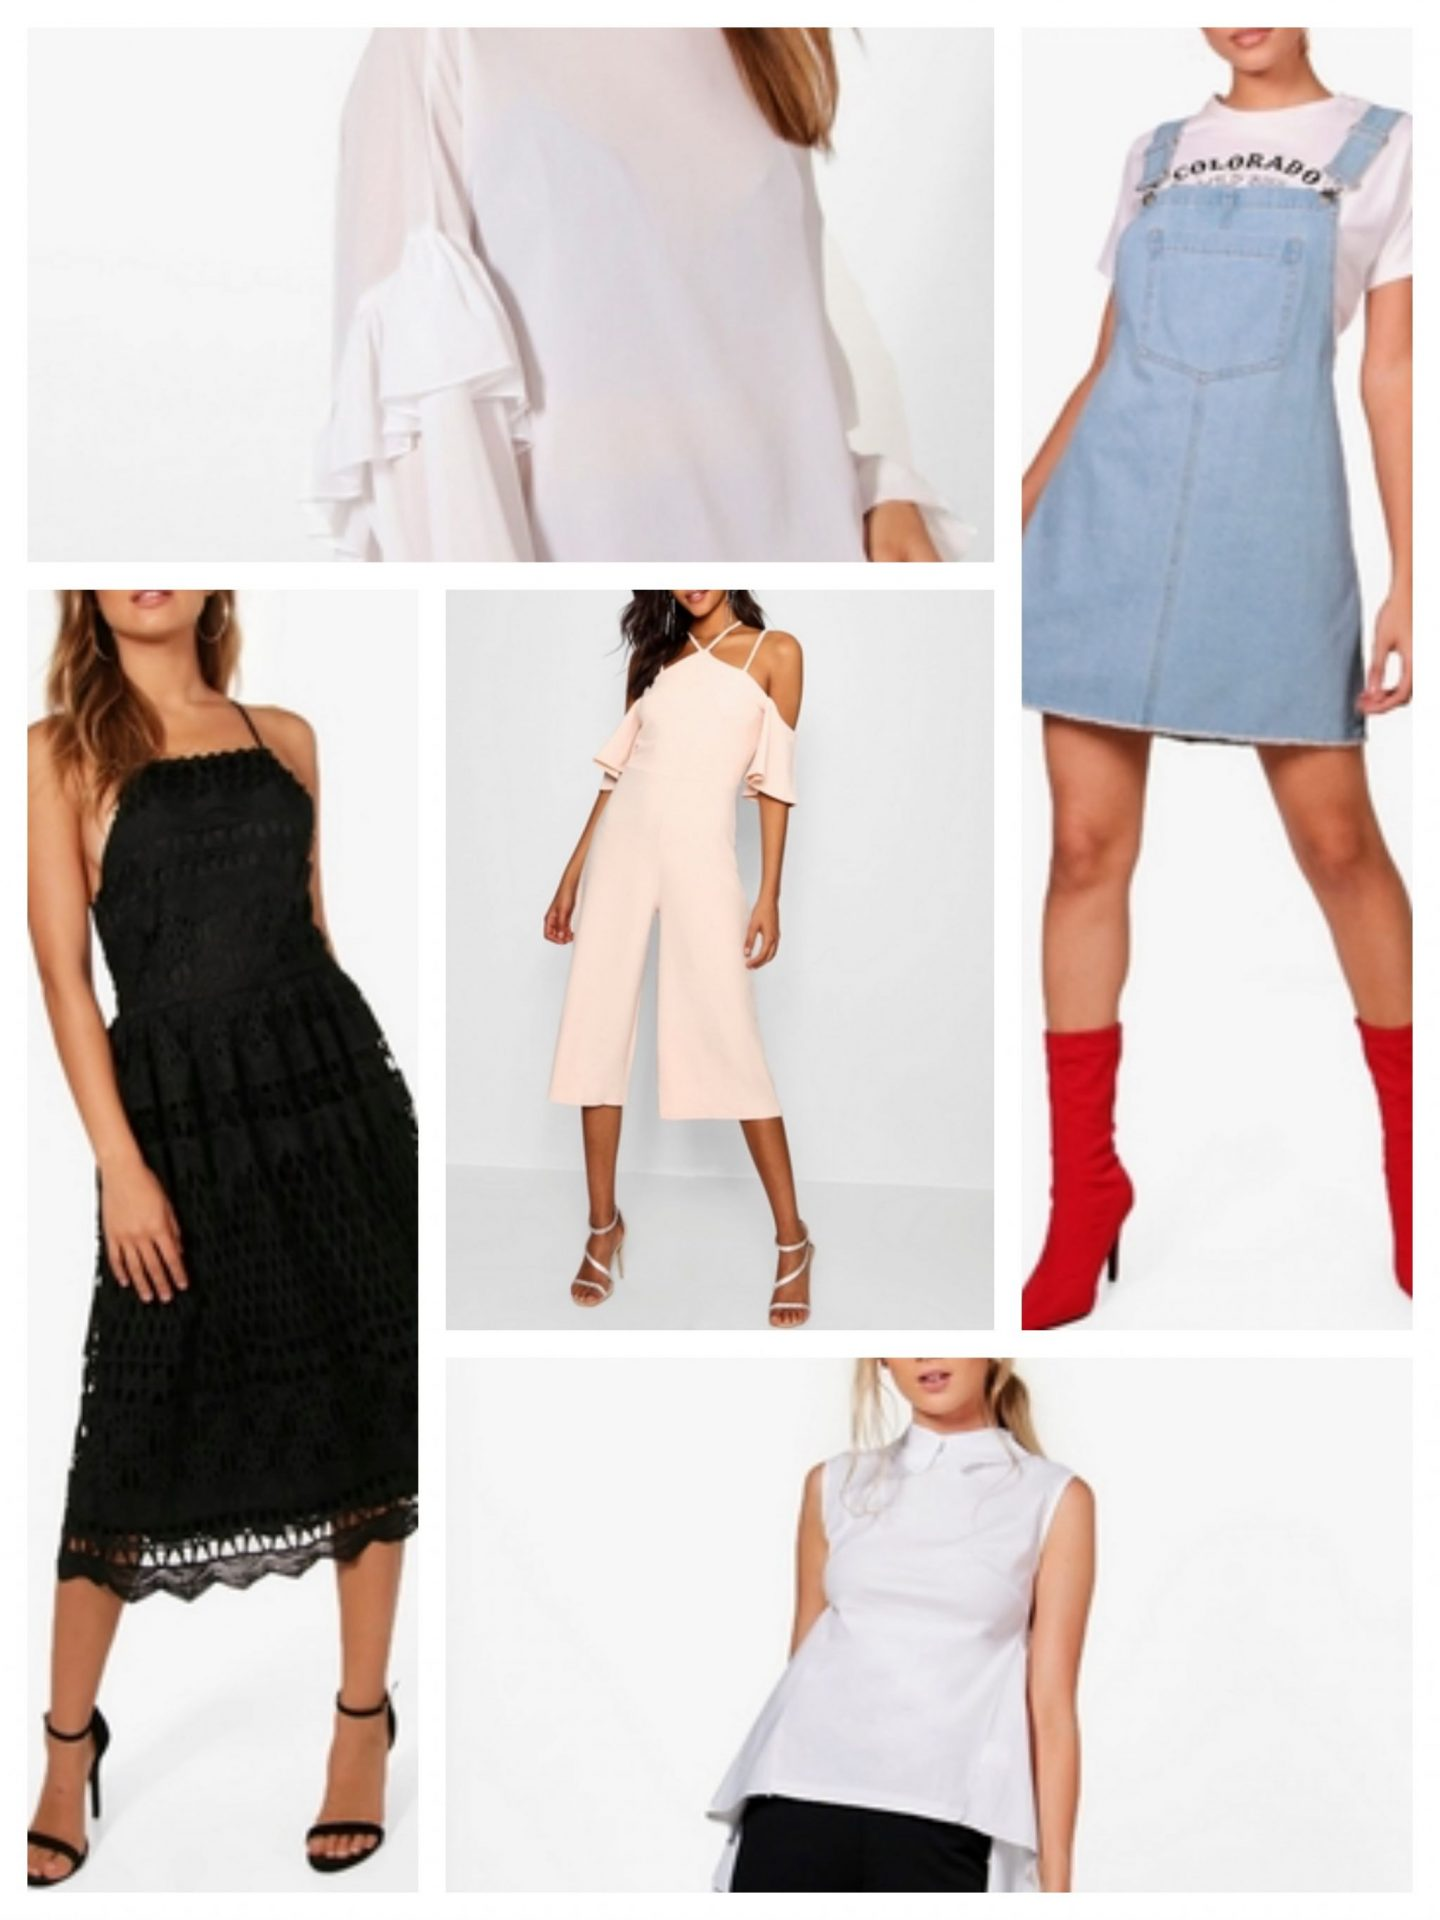 Boohoo sale picks